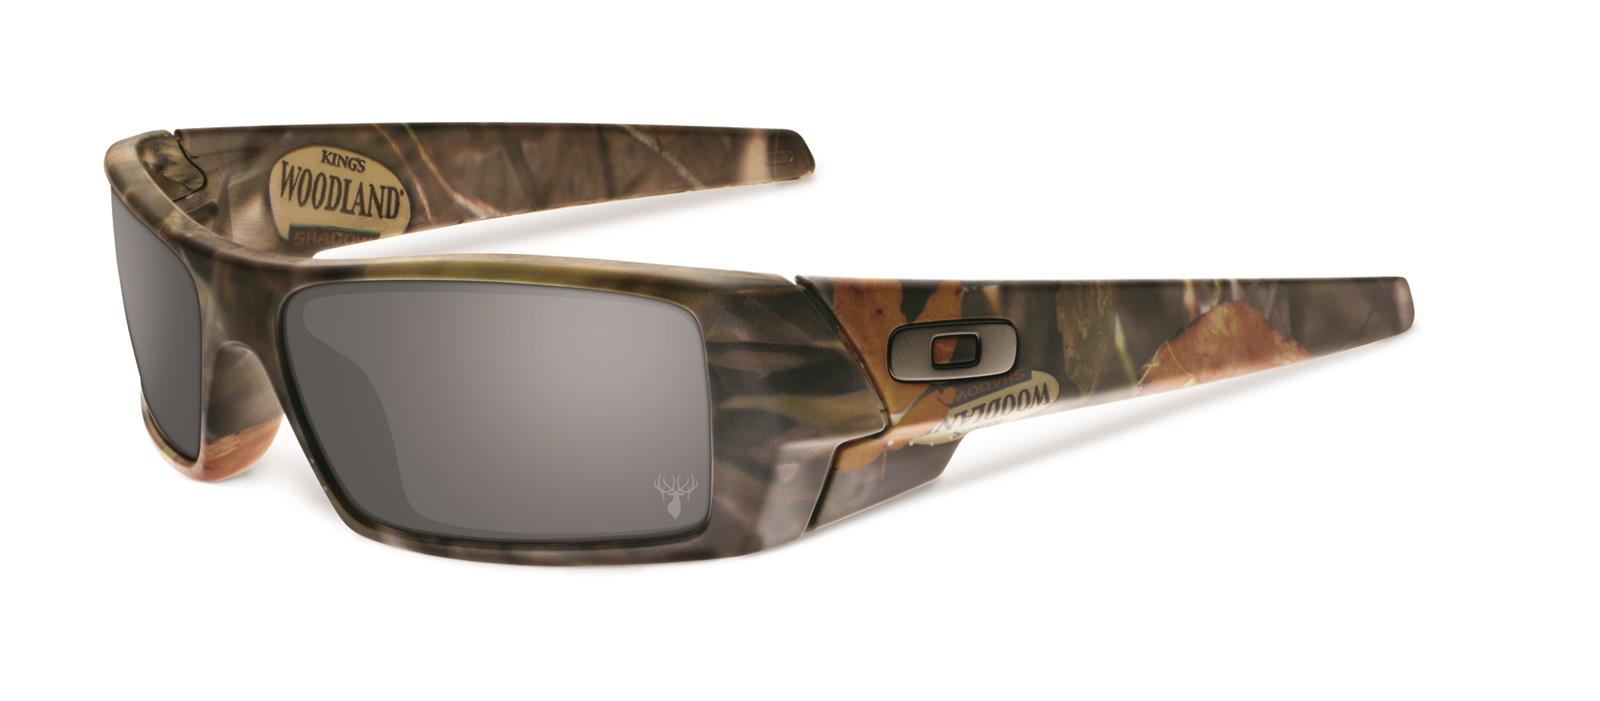 oakley sunglasses camo  Oakley King\u0027s Camouflage GasCan Sunglasses 03-483 - Free Shipping ...